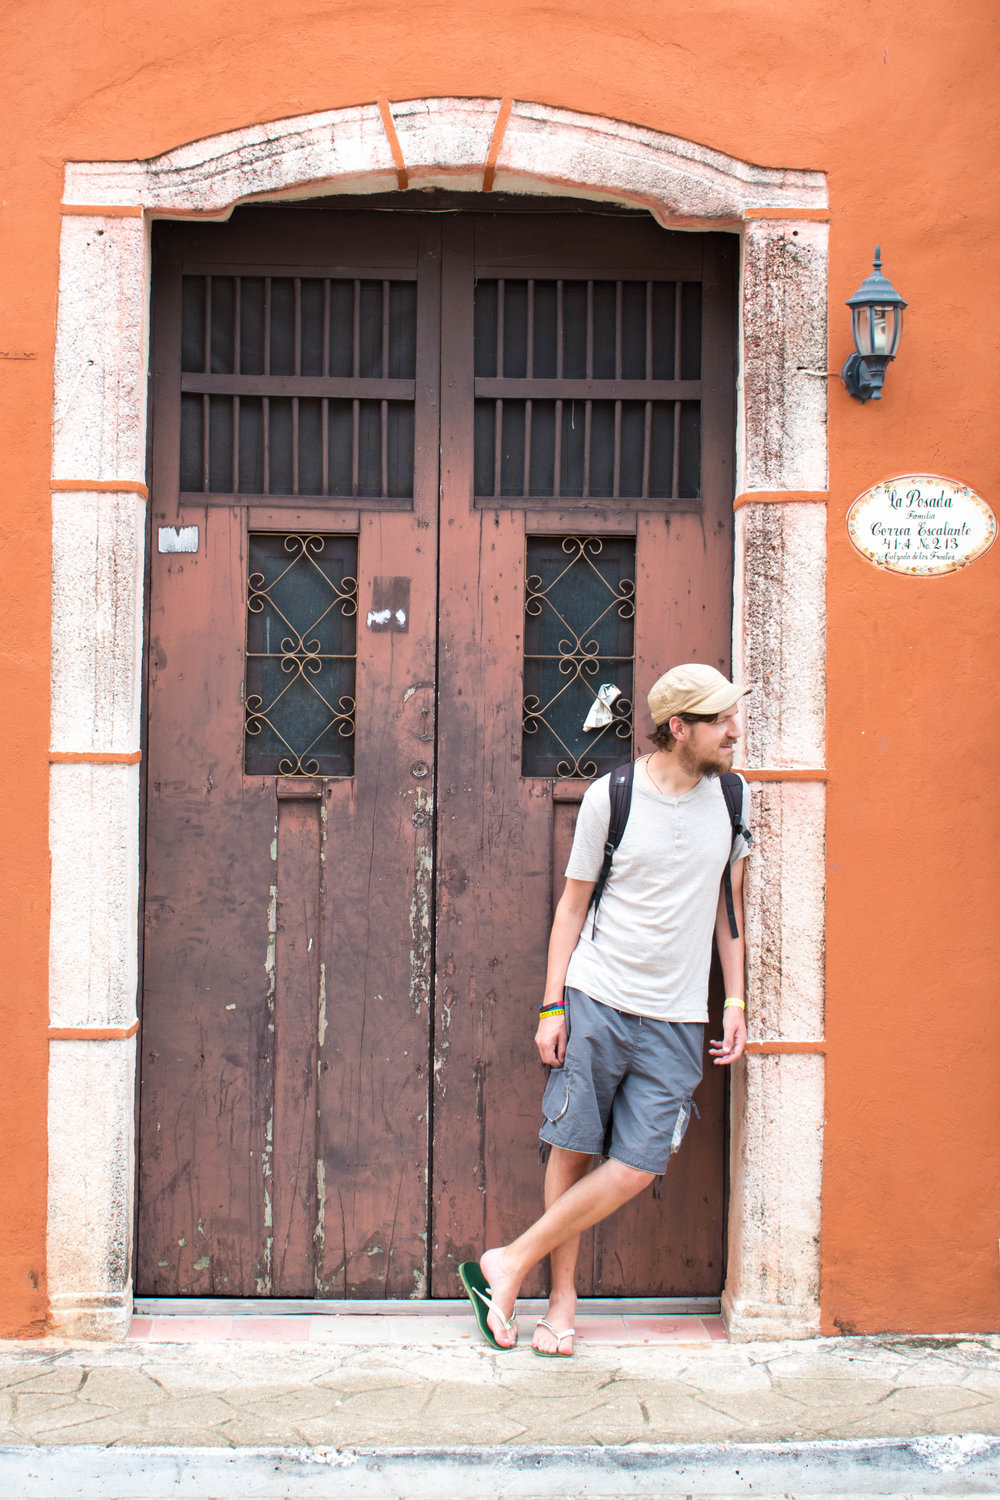 Craig in A Colourful Doorway in Valladolid in Mexico